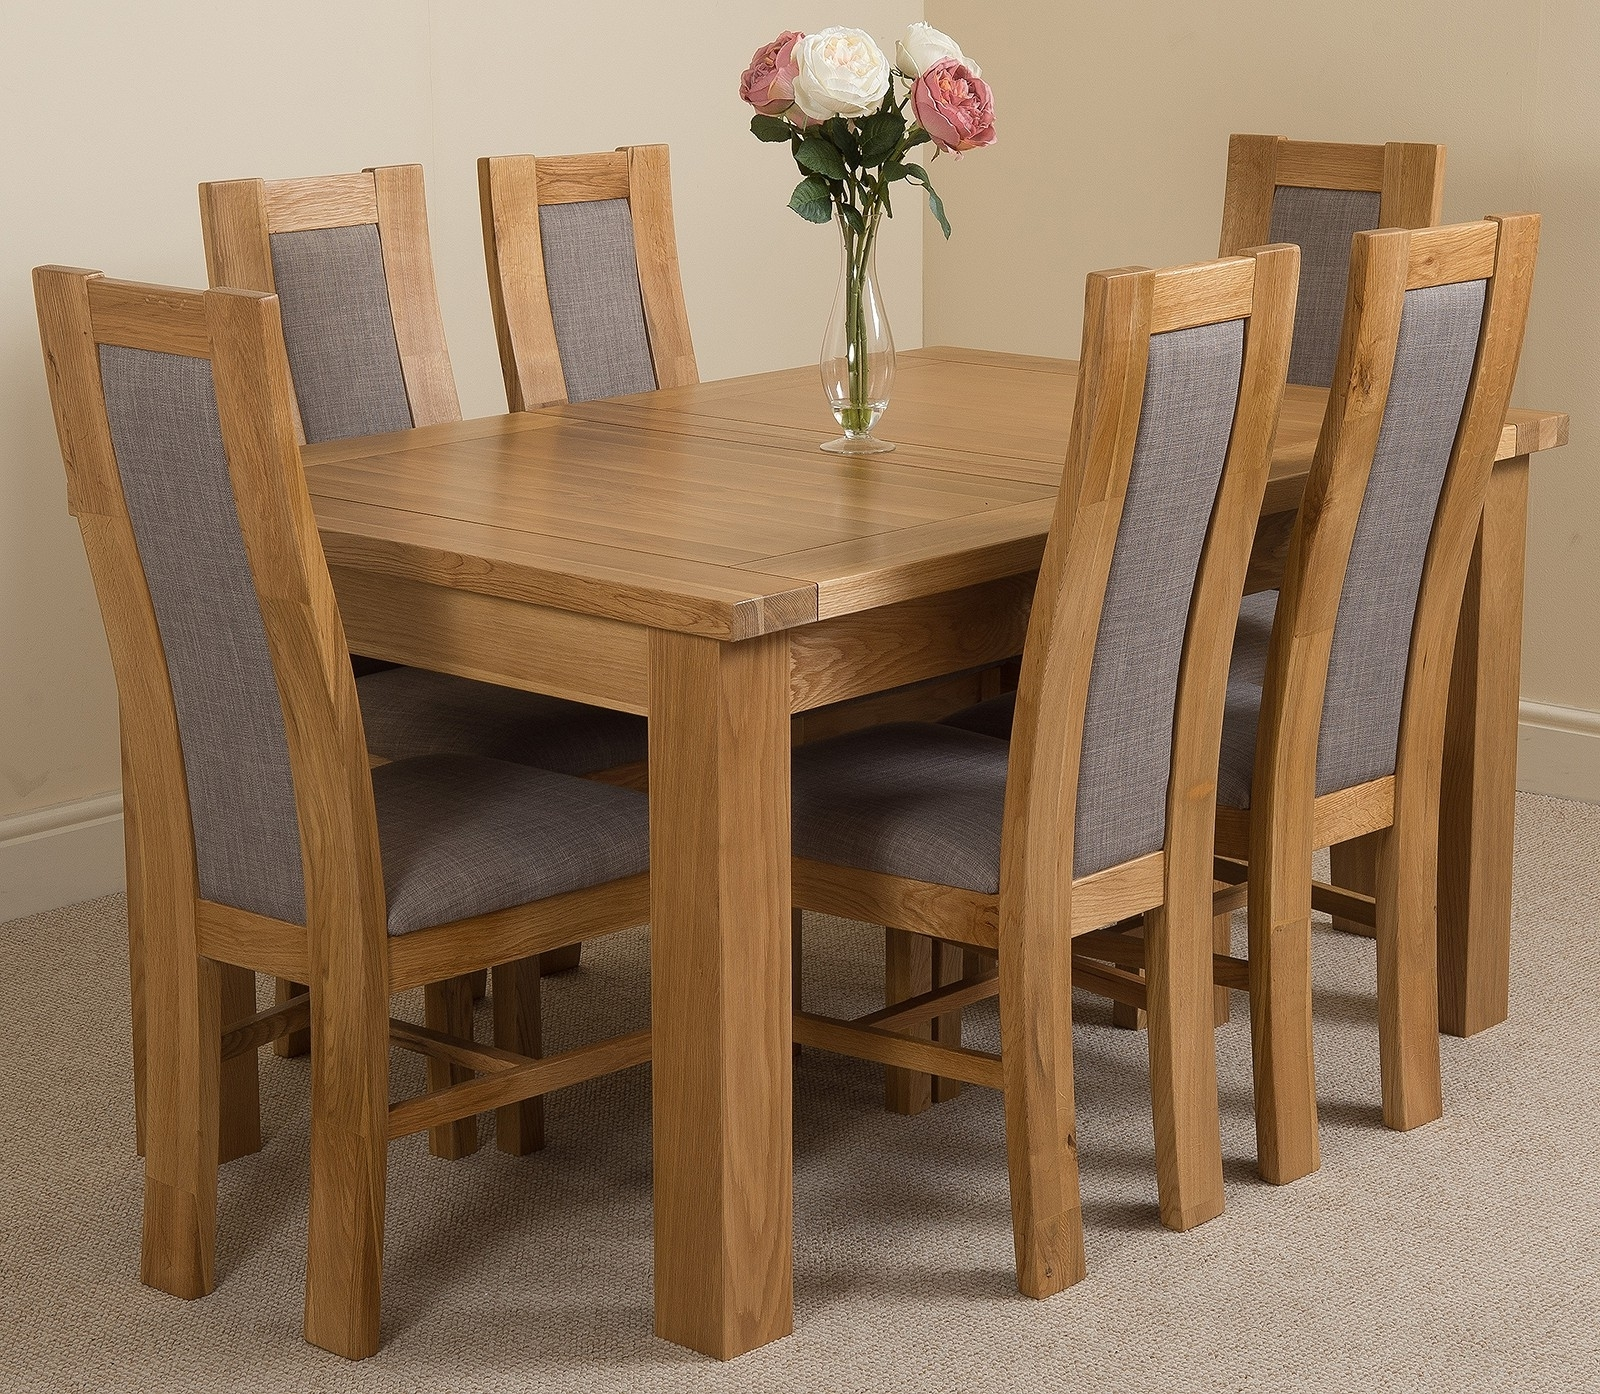 Oak Extendable Dining Tables And Chairs Within Well Known Seattle Dining Set With 6 Stanford Chairs (View 14 of 25)